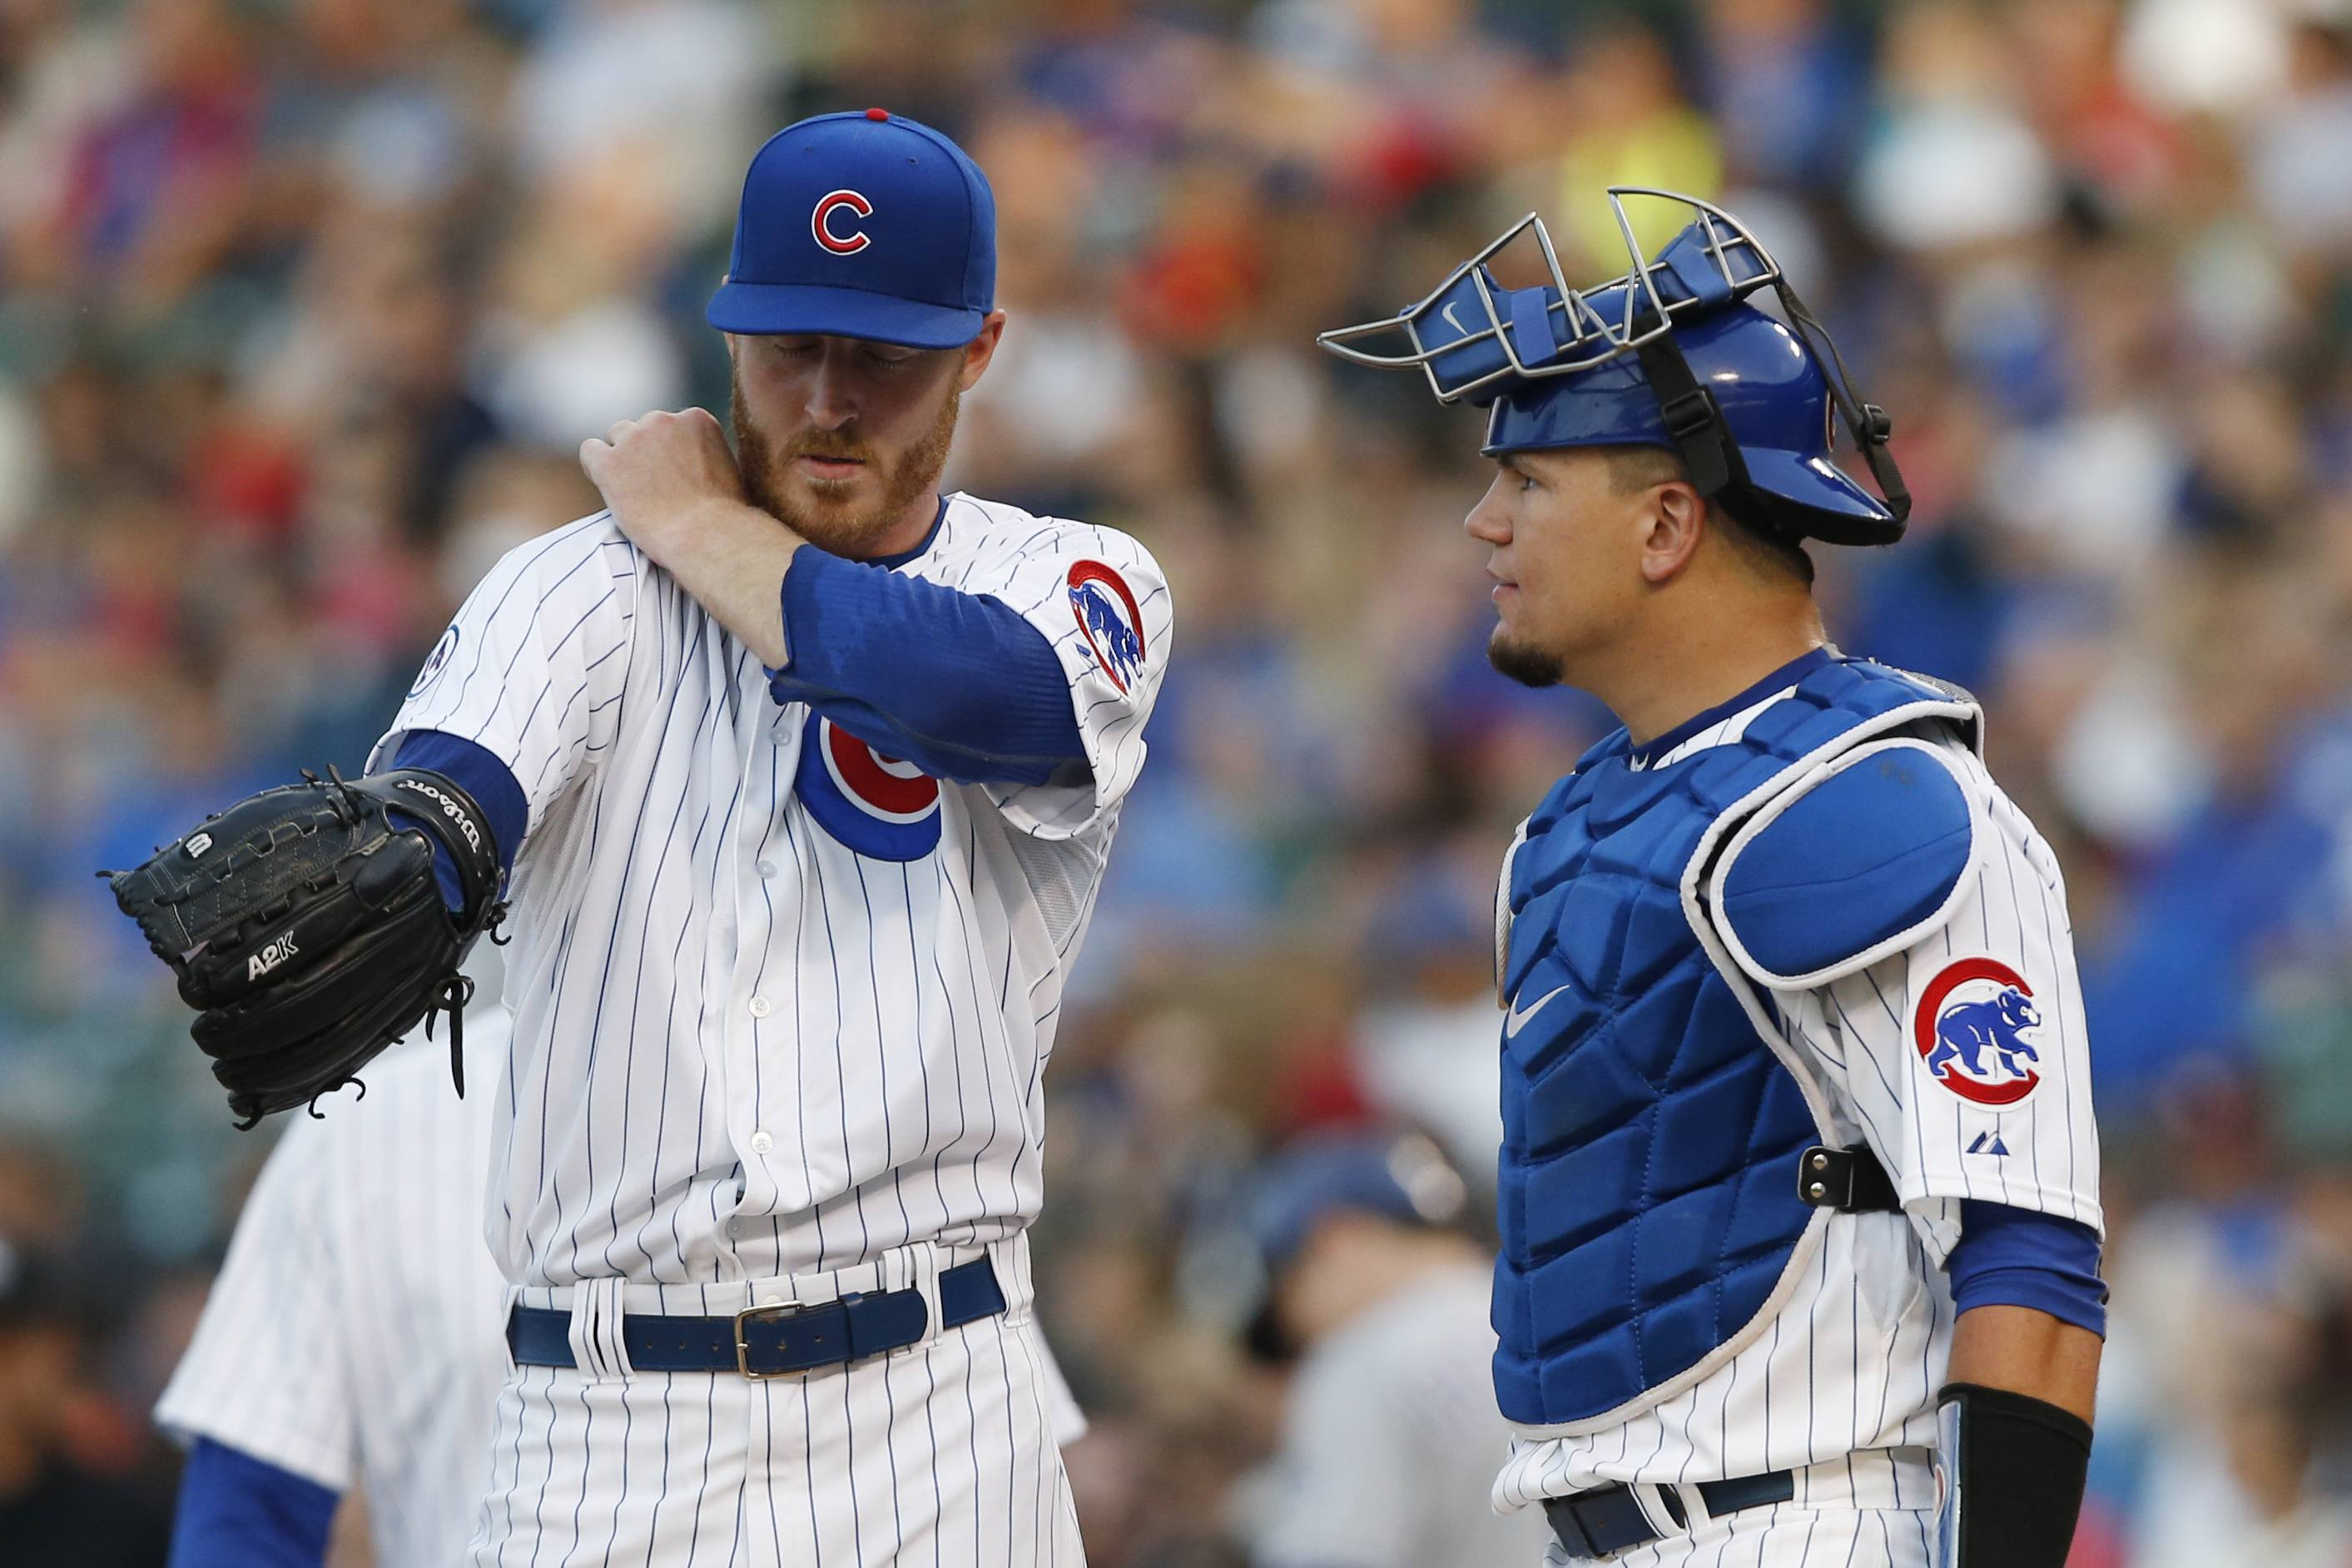 Chicago Cubs getting Schwarber at-bats however they can